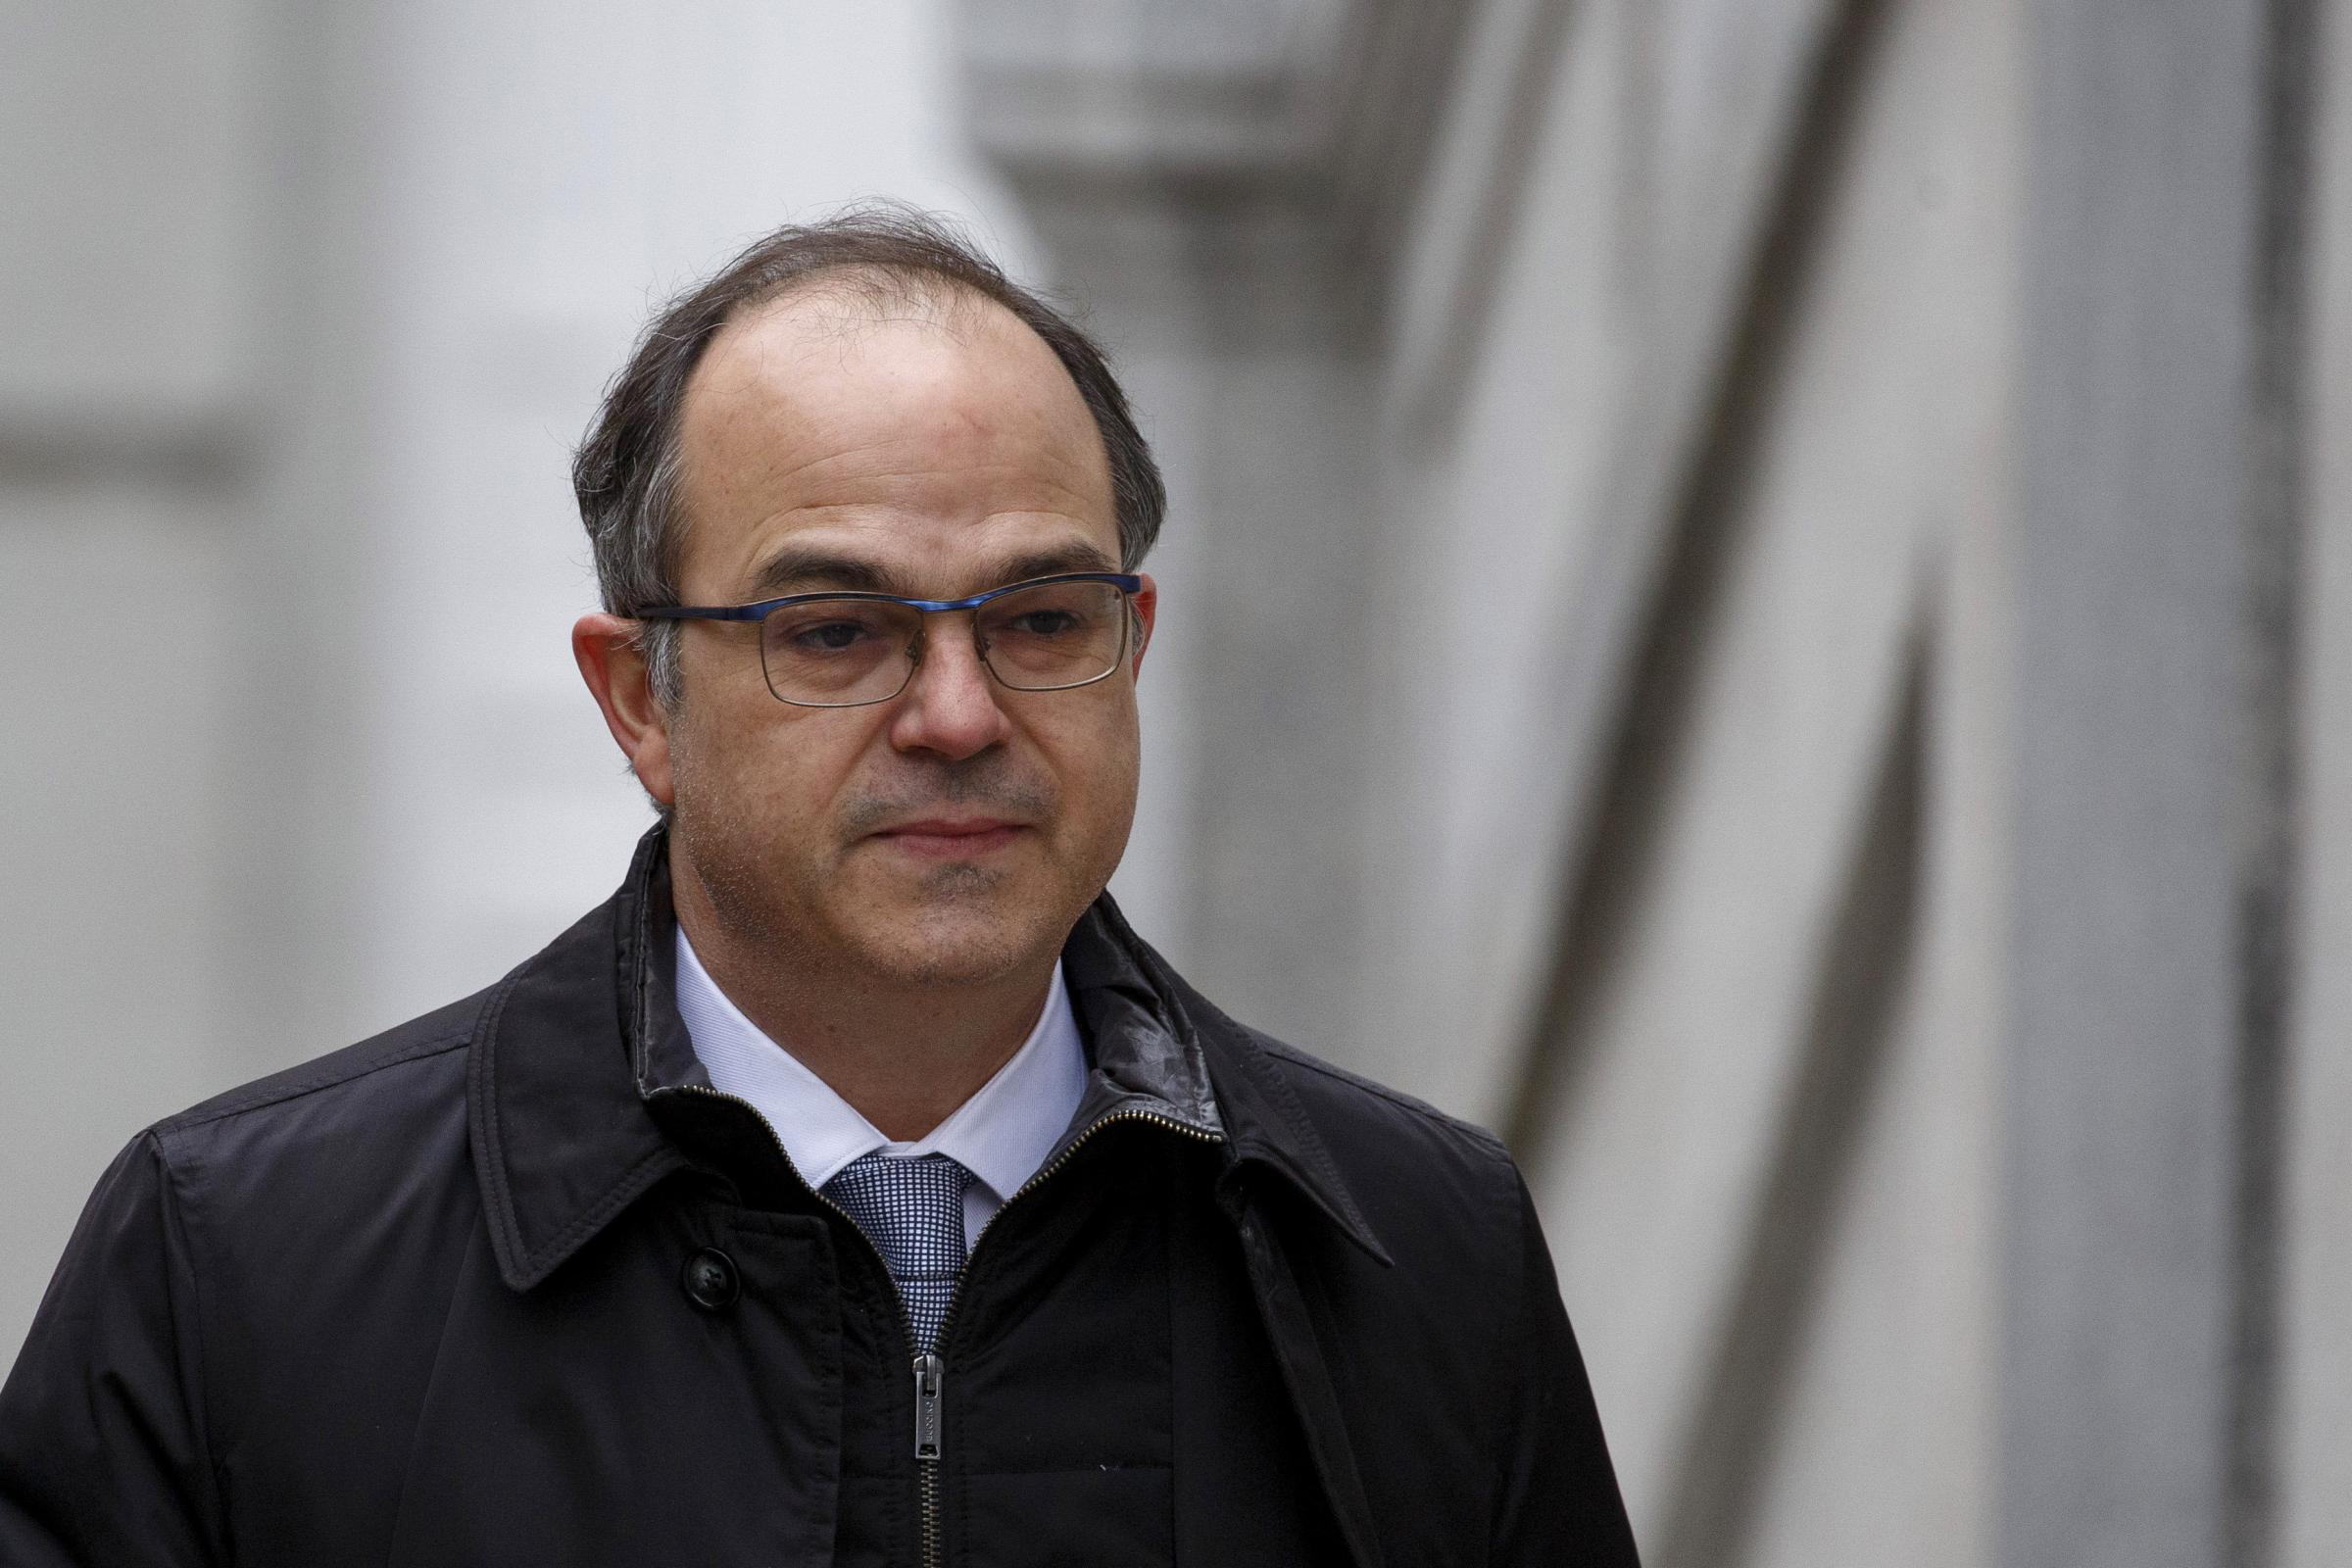 Jordi Turull is one of 12 pro-independence leaders on trial at the Spanish Supreme Court